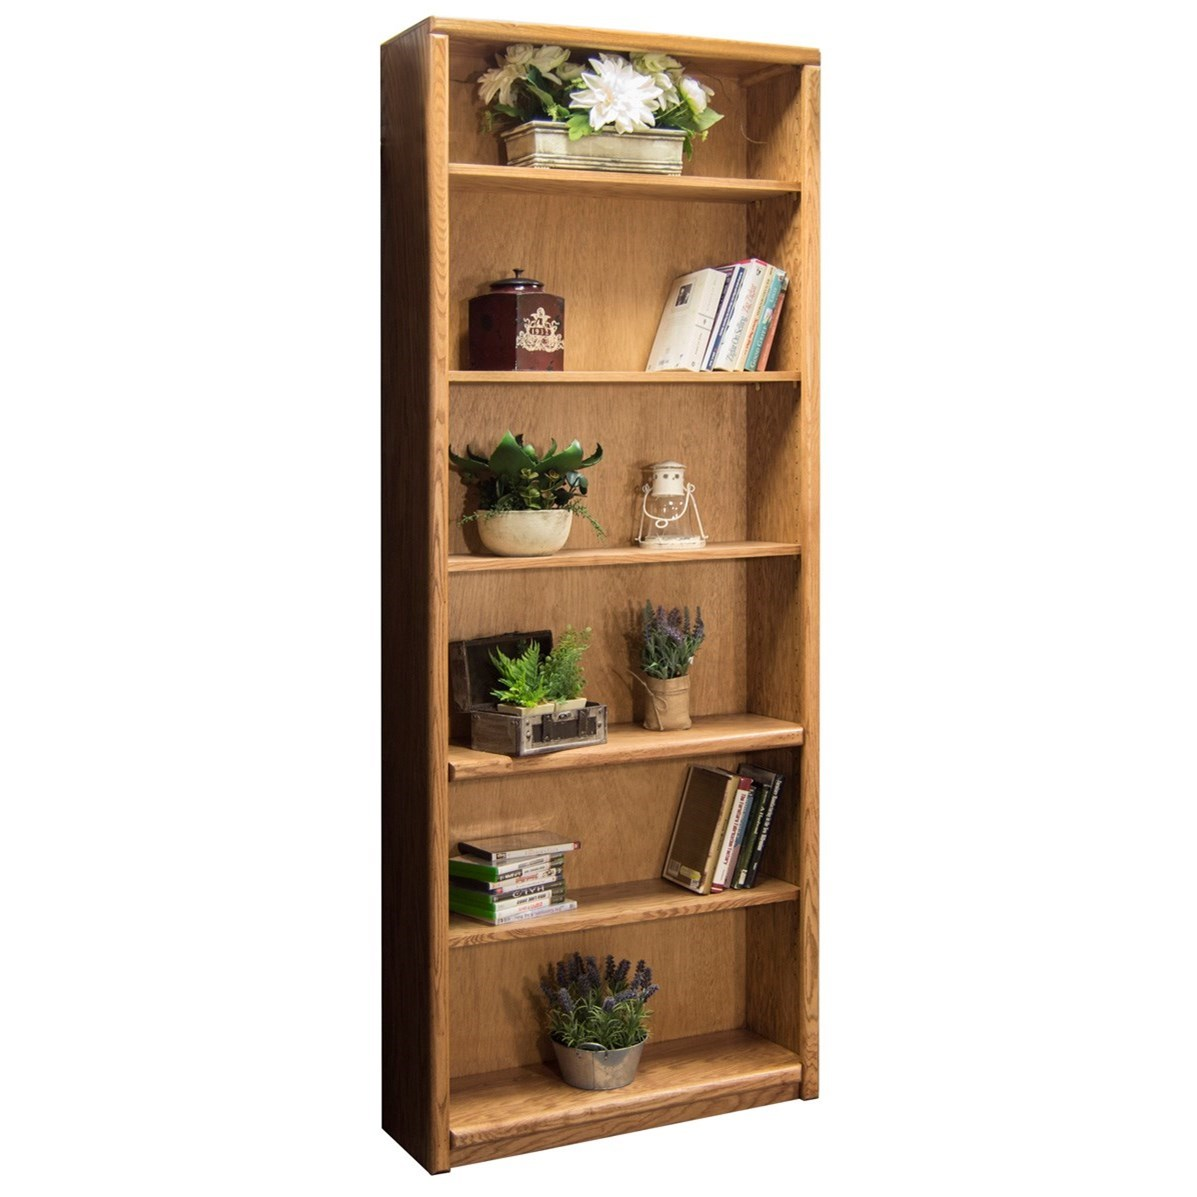 Vendor 1356 Contemporary - Value Groups Bookcase With 1 Fixed & 4 adj. Shelves - Item Number: CC6684